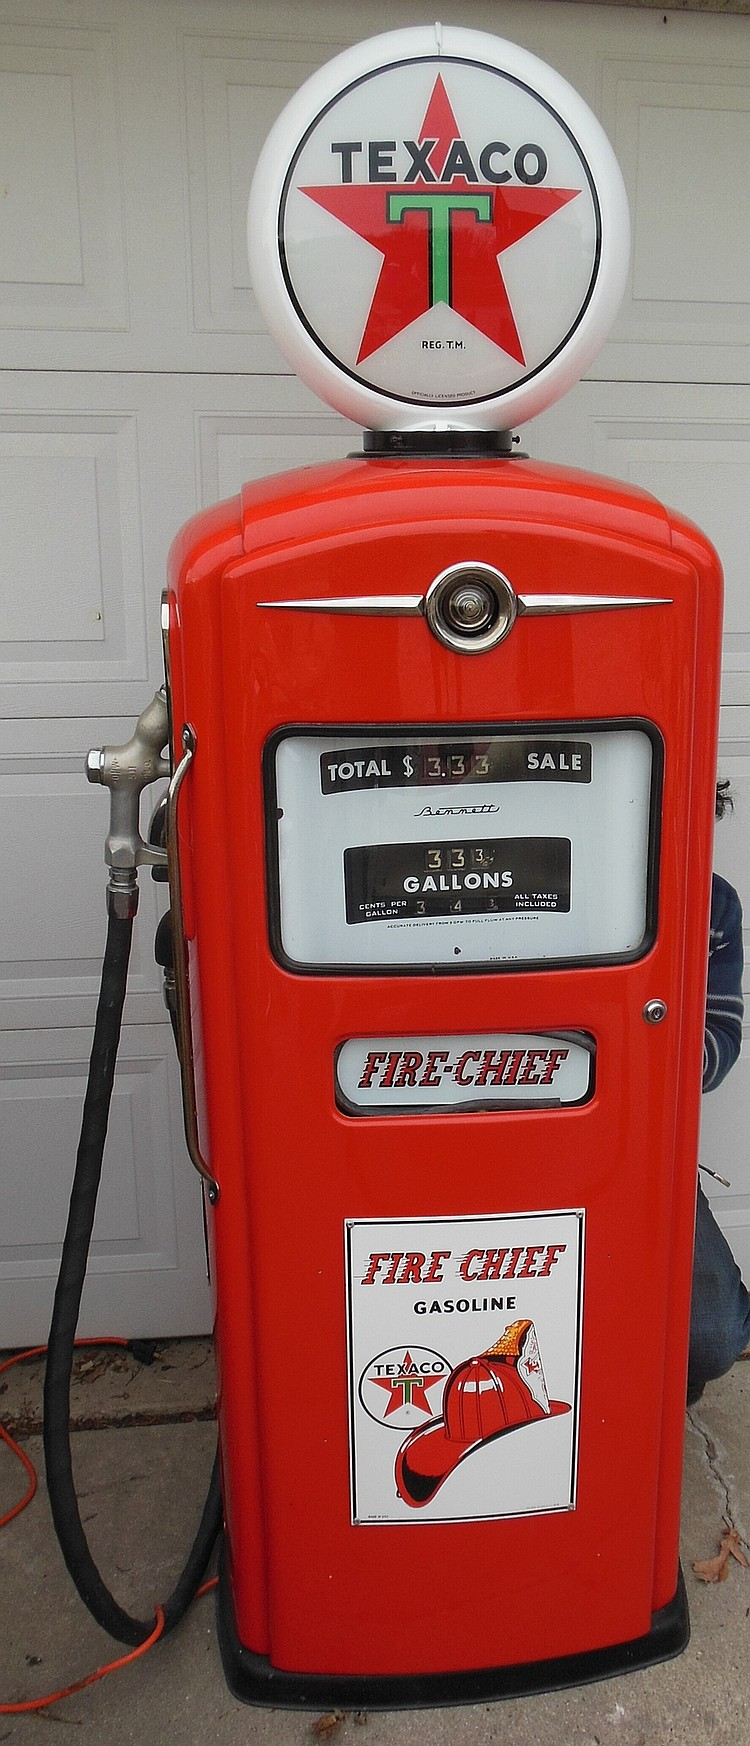 Texaco Fire Chief Gas Pump, Restored